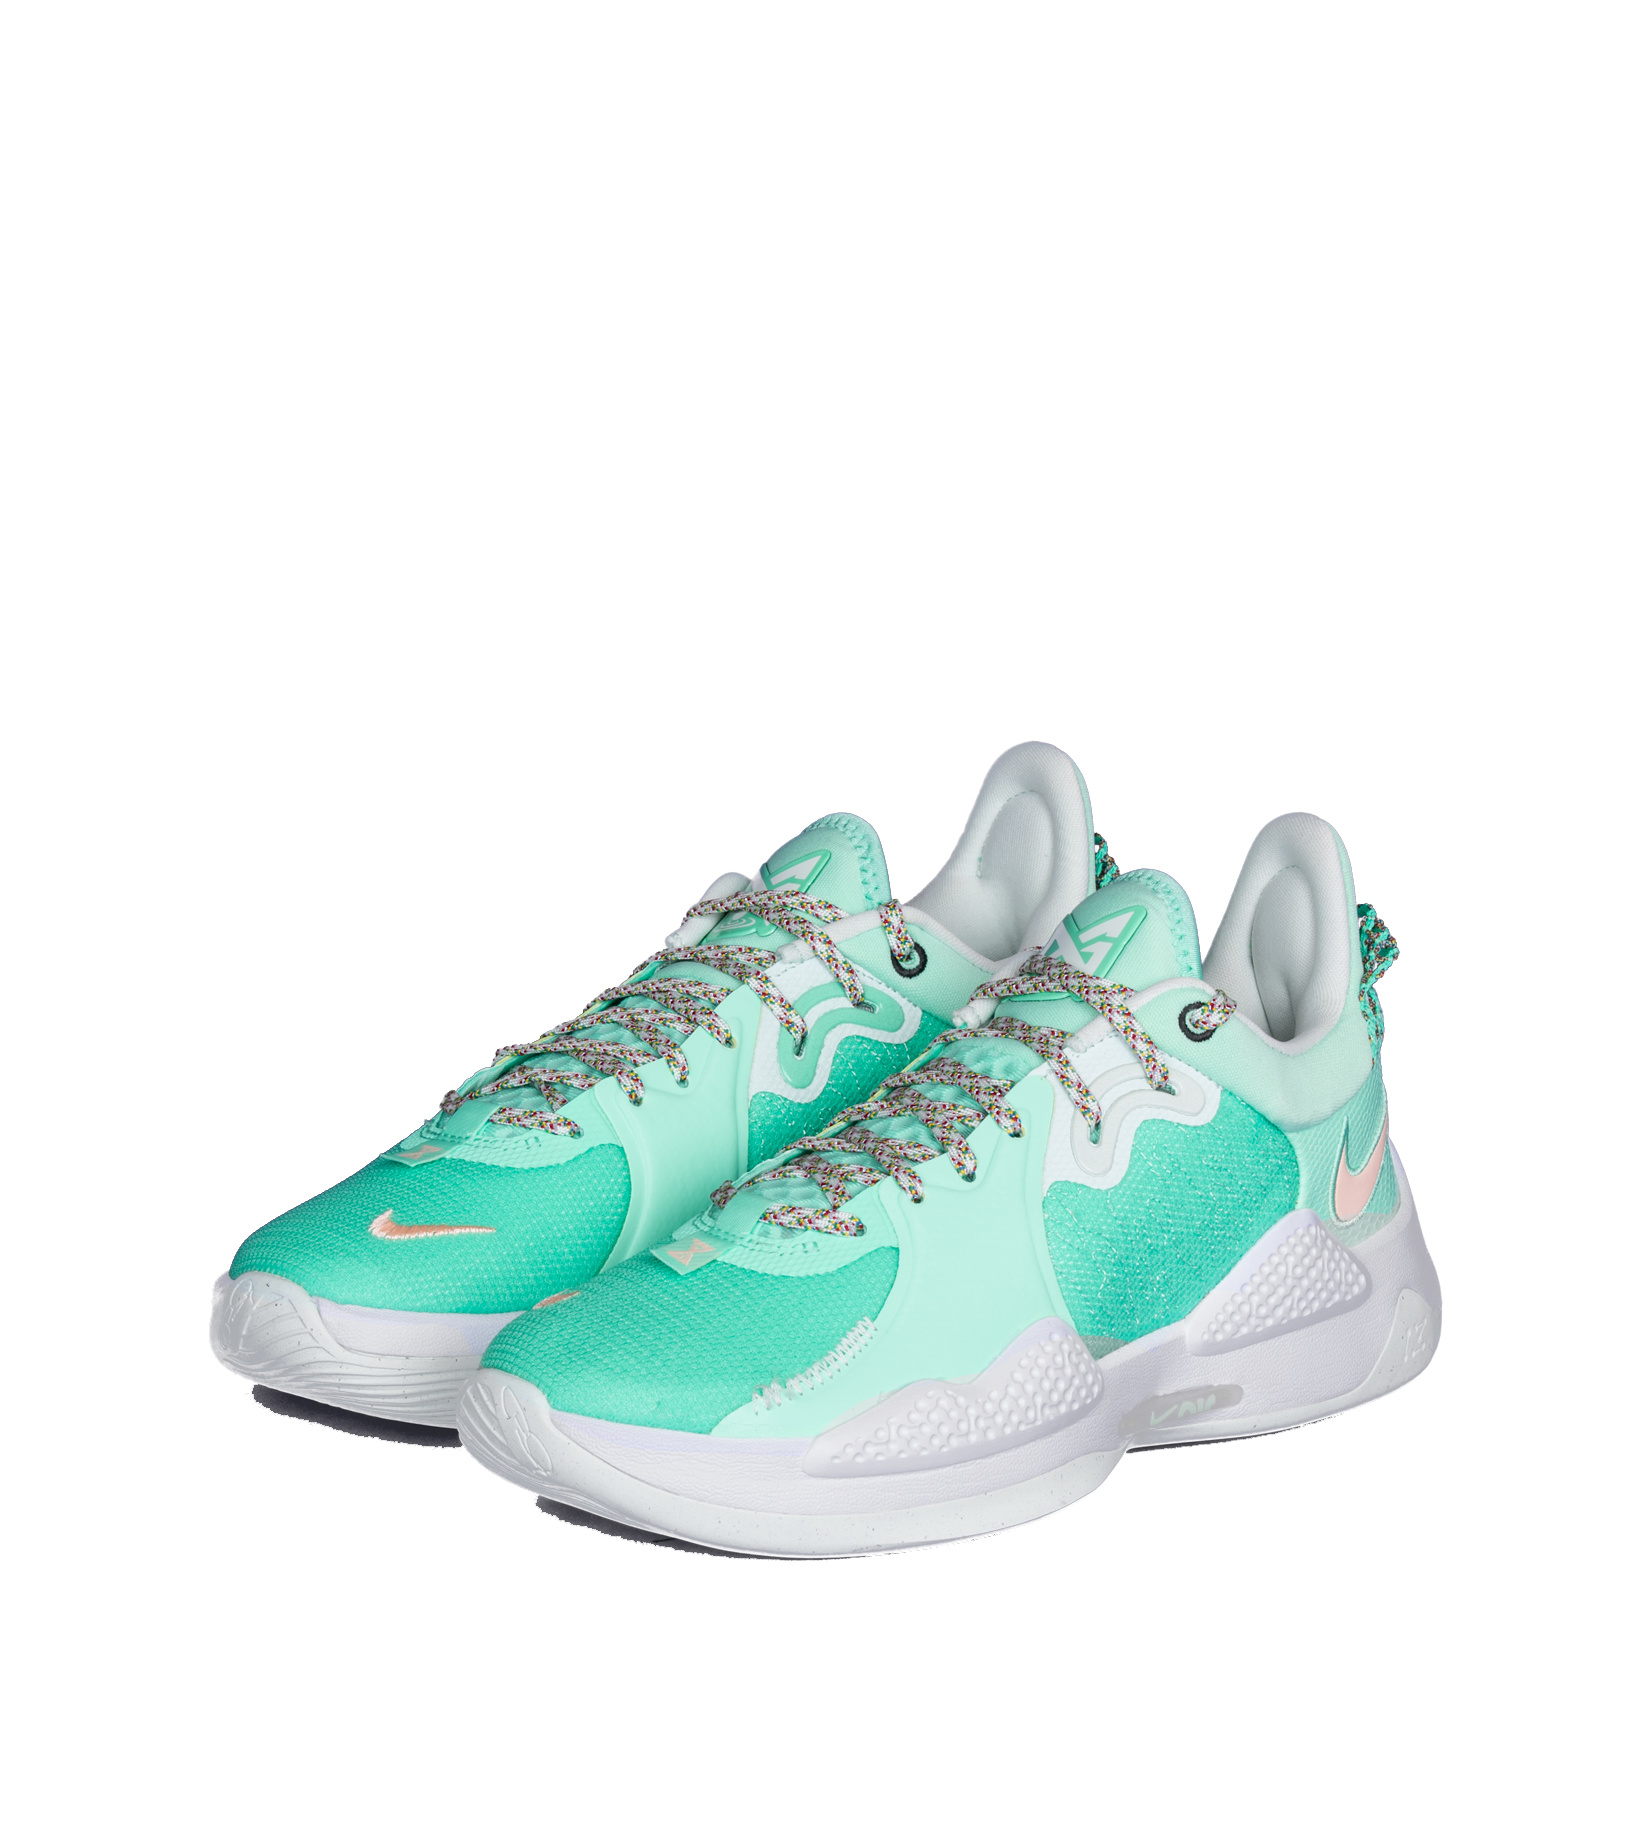 """PG 5 """"Green Glow/Barely Green""""-1"""